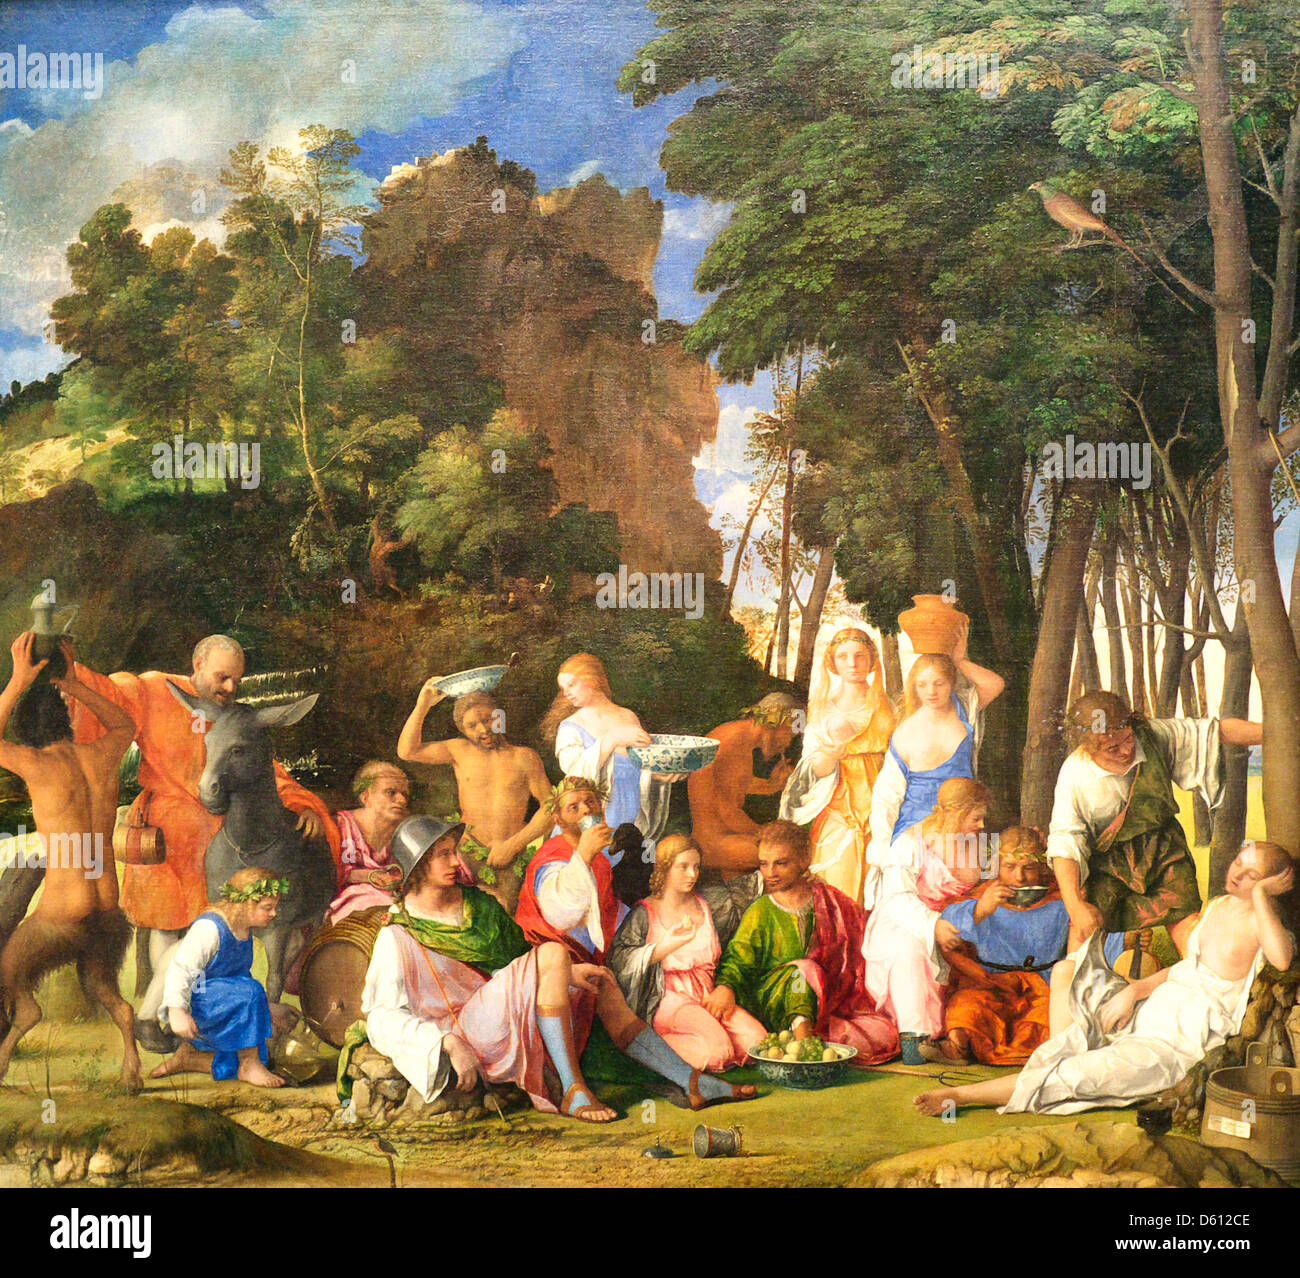 The Feast of the Gods - Giovanni Bellini and Titian - Stock Image